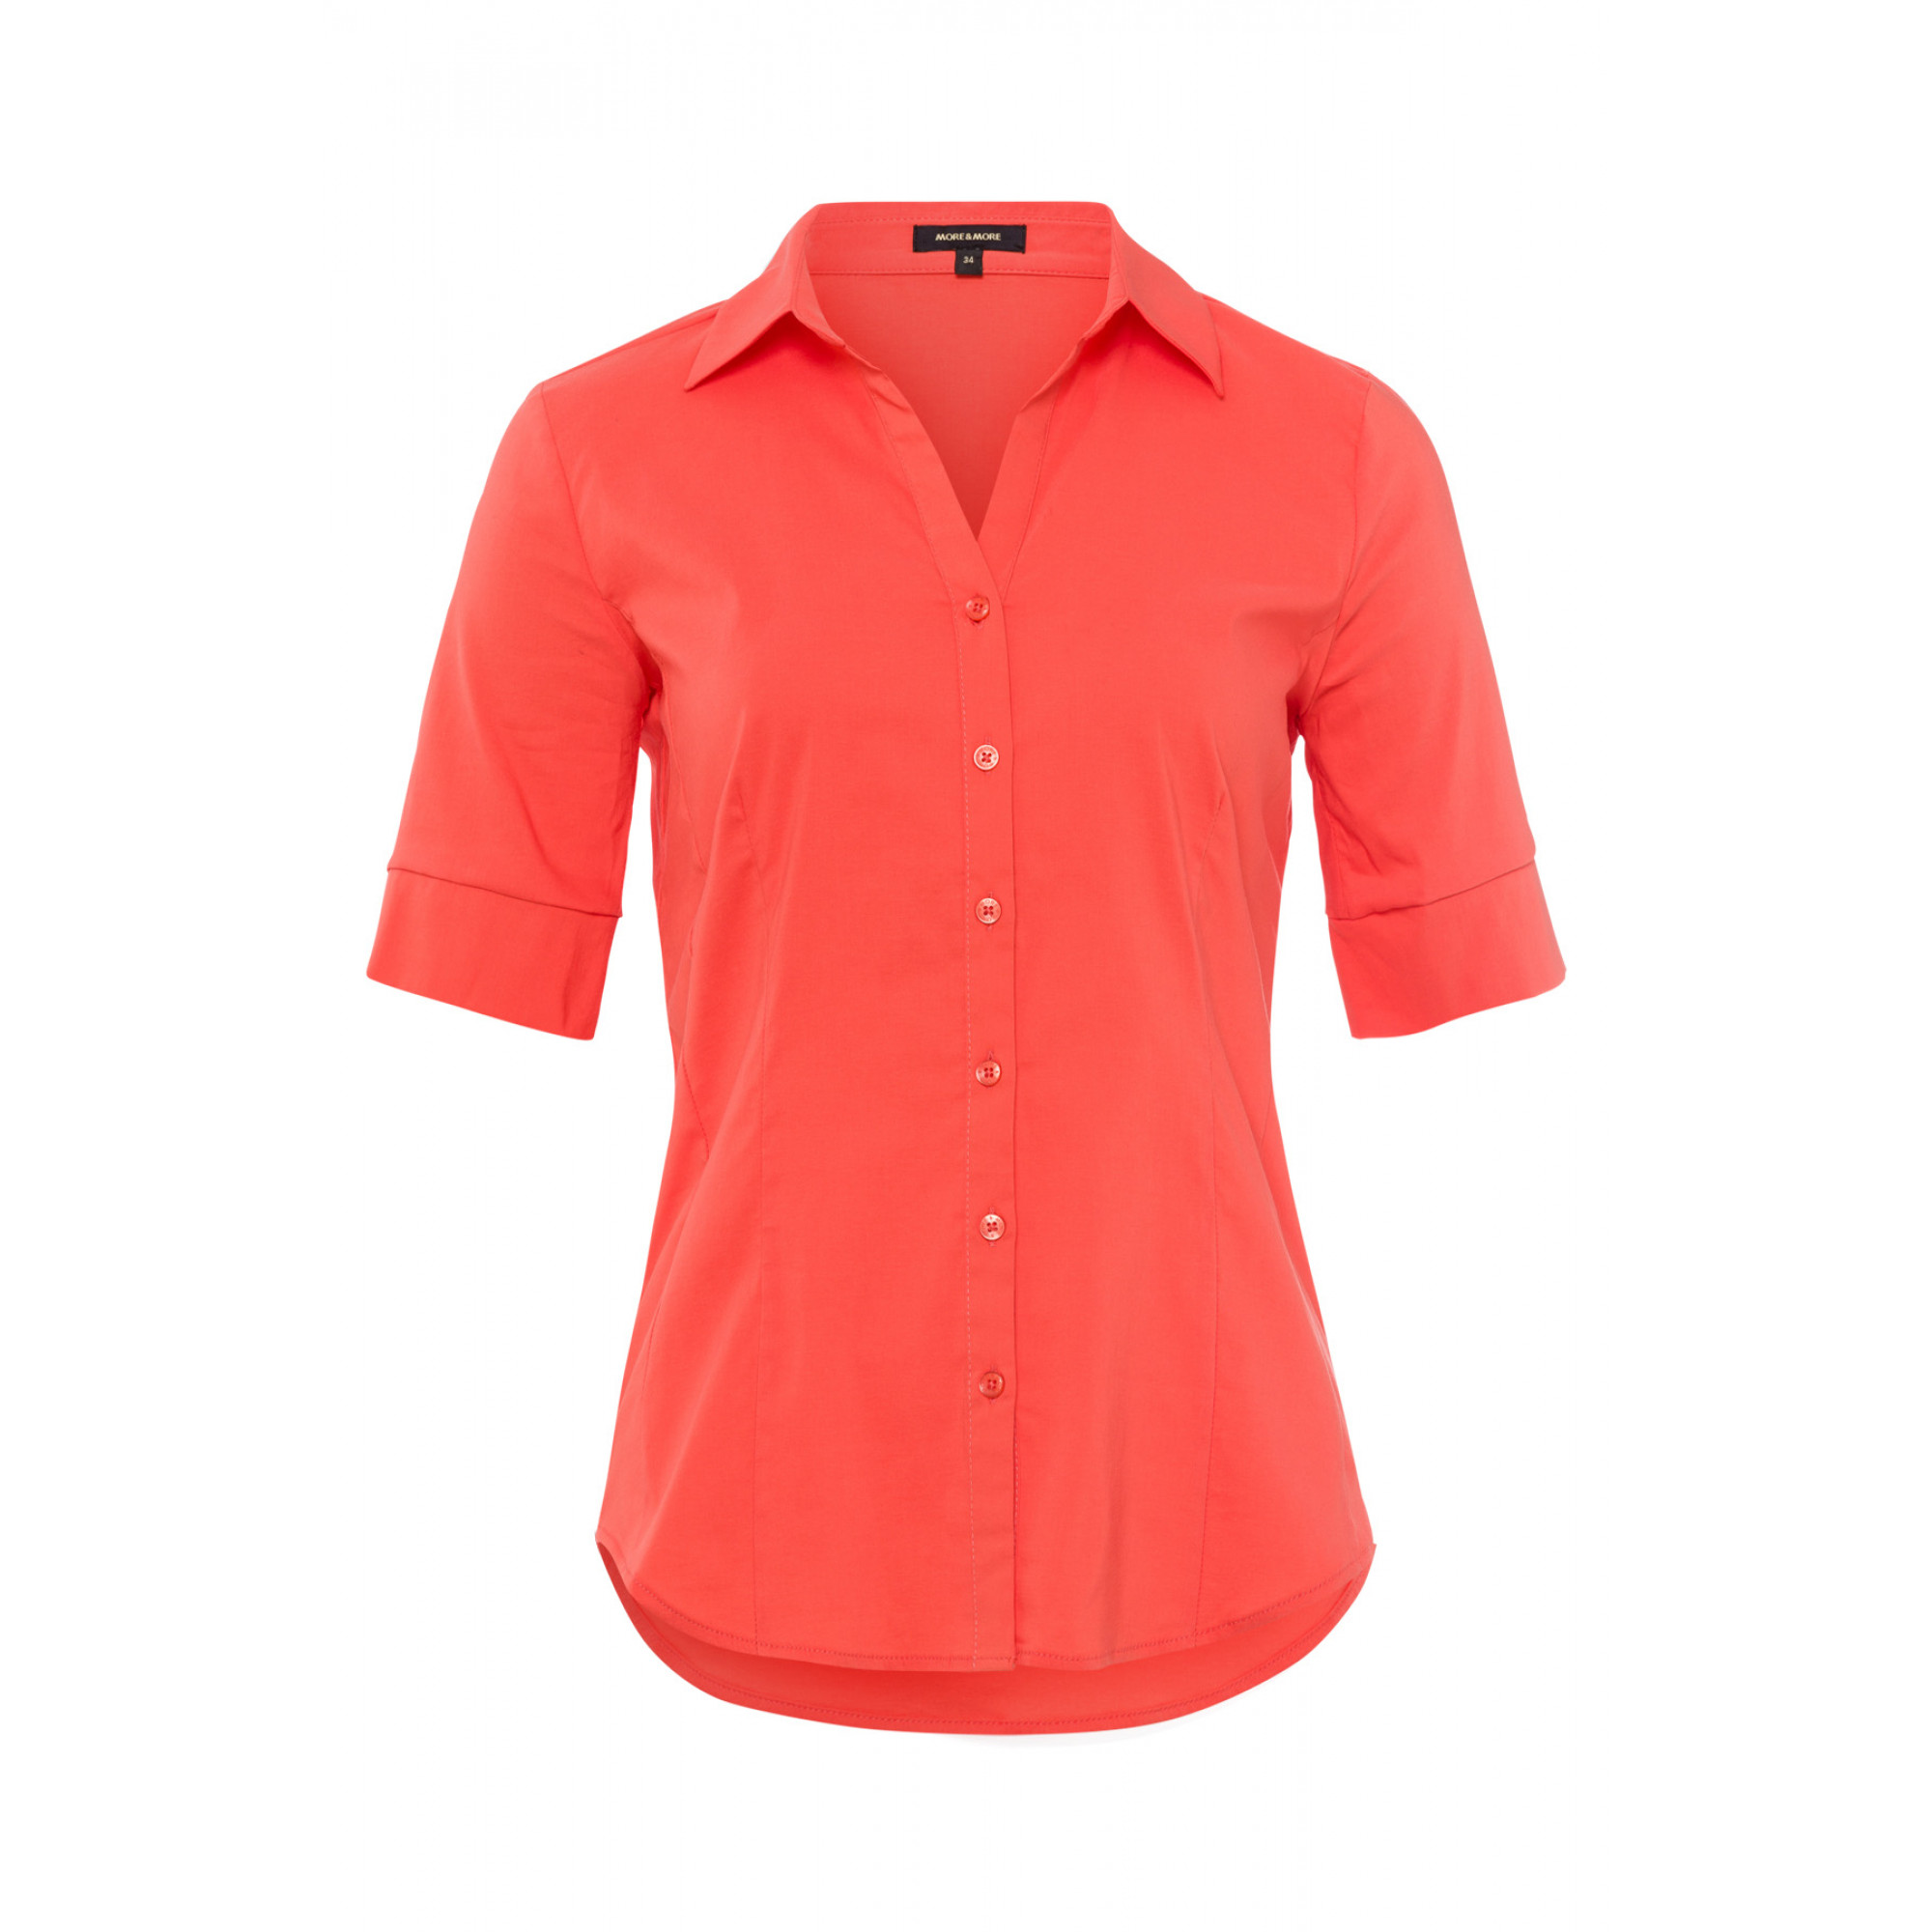 Baumwoll/Stretch Bluse, papaya 91952566-0514 1